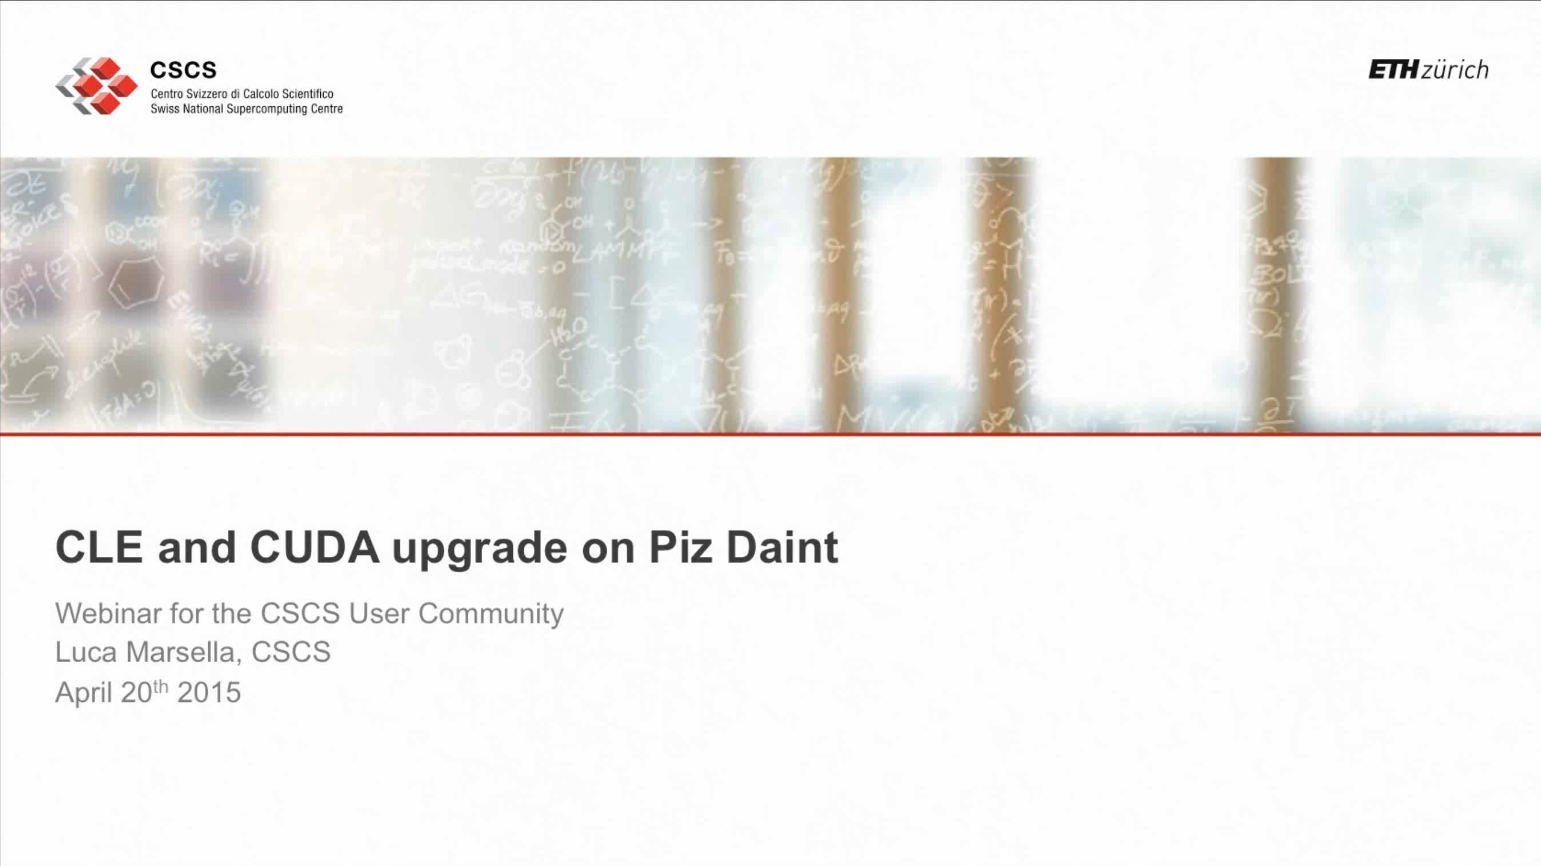 Video: Webinar on the CLE5.2.UP02 and CUDA6.5 upgrade